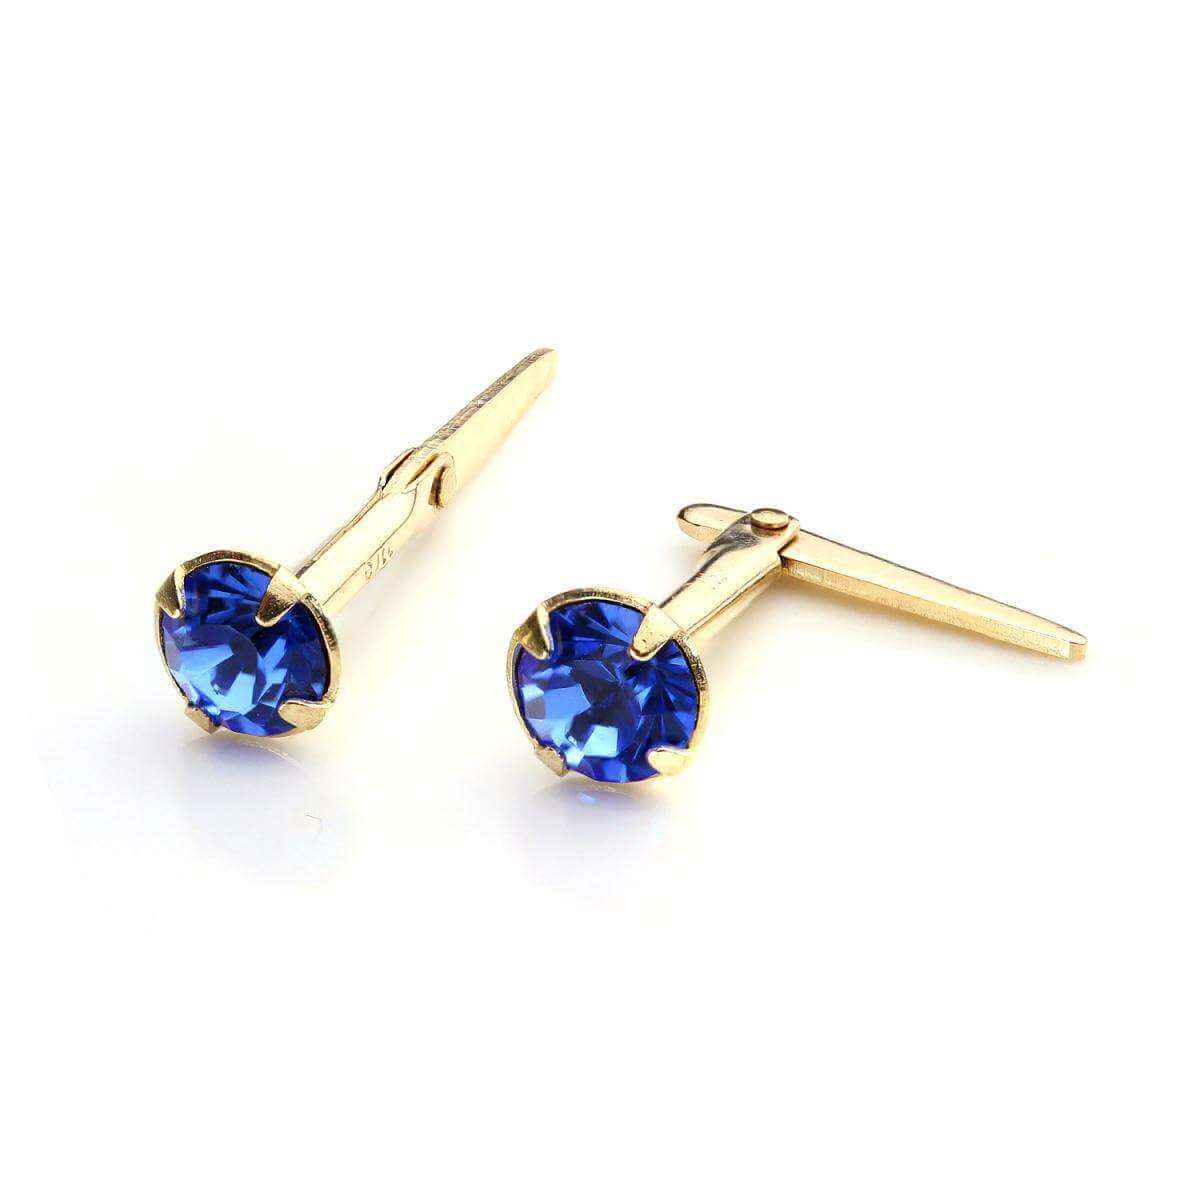 9ct Gold Andralok Stud Earrings with 3mm Sapphire Crystal